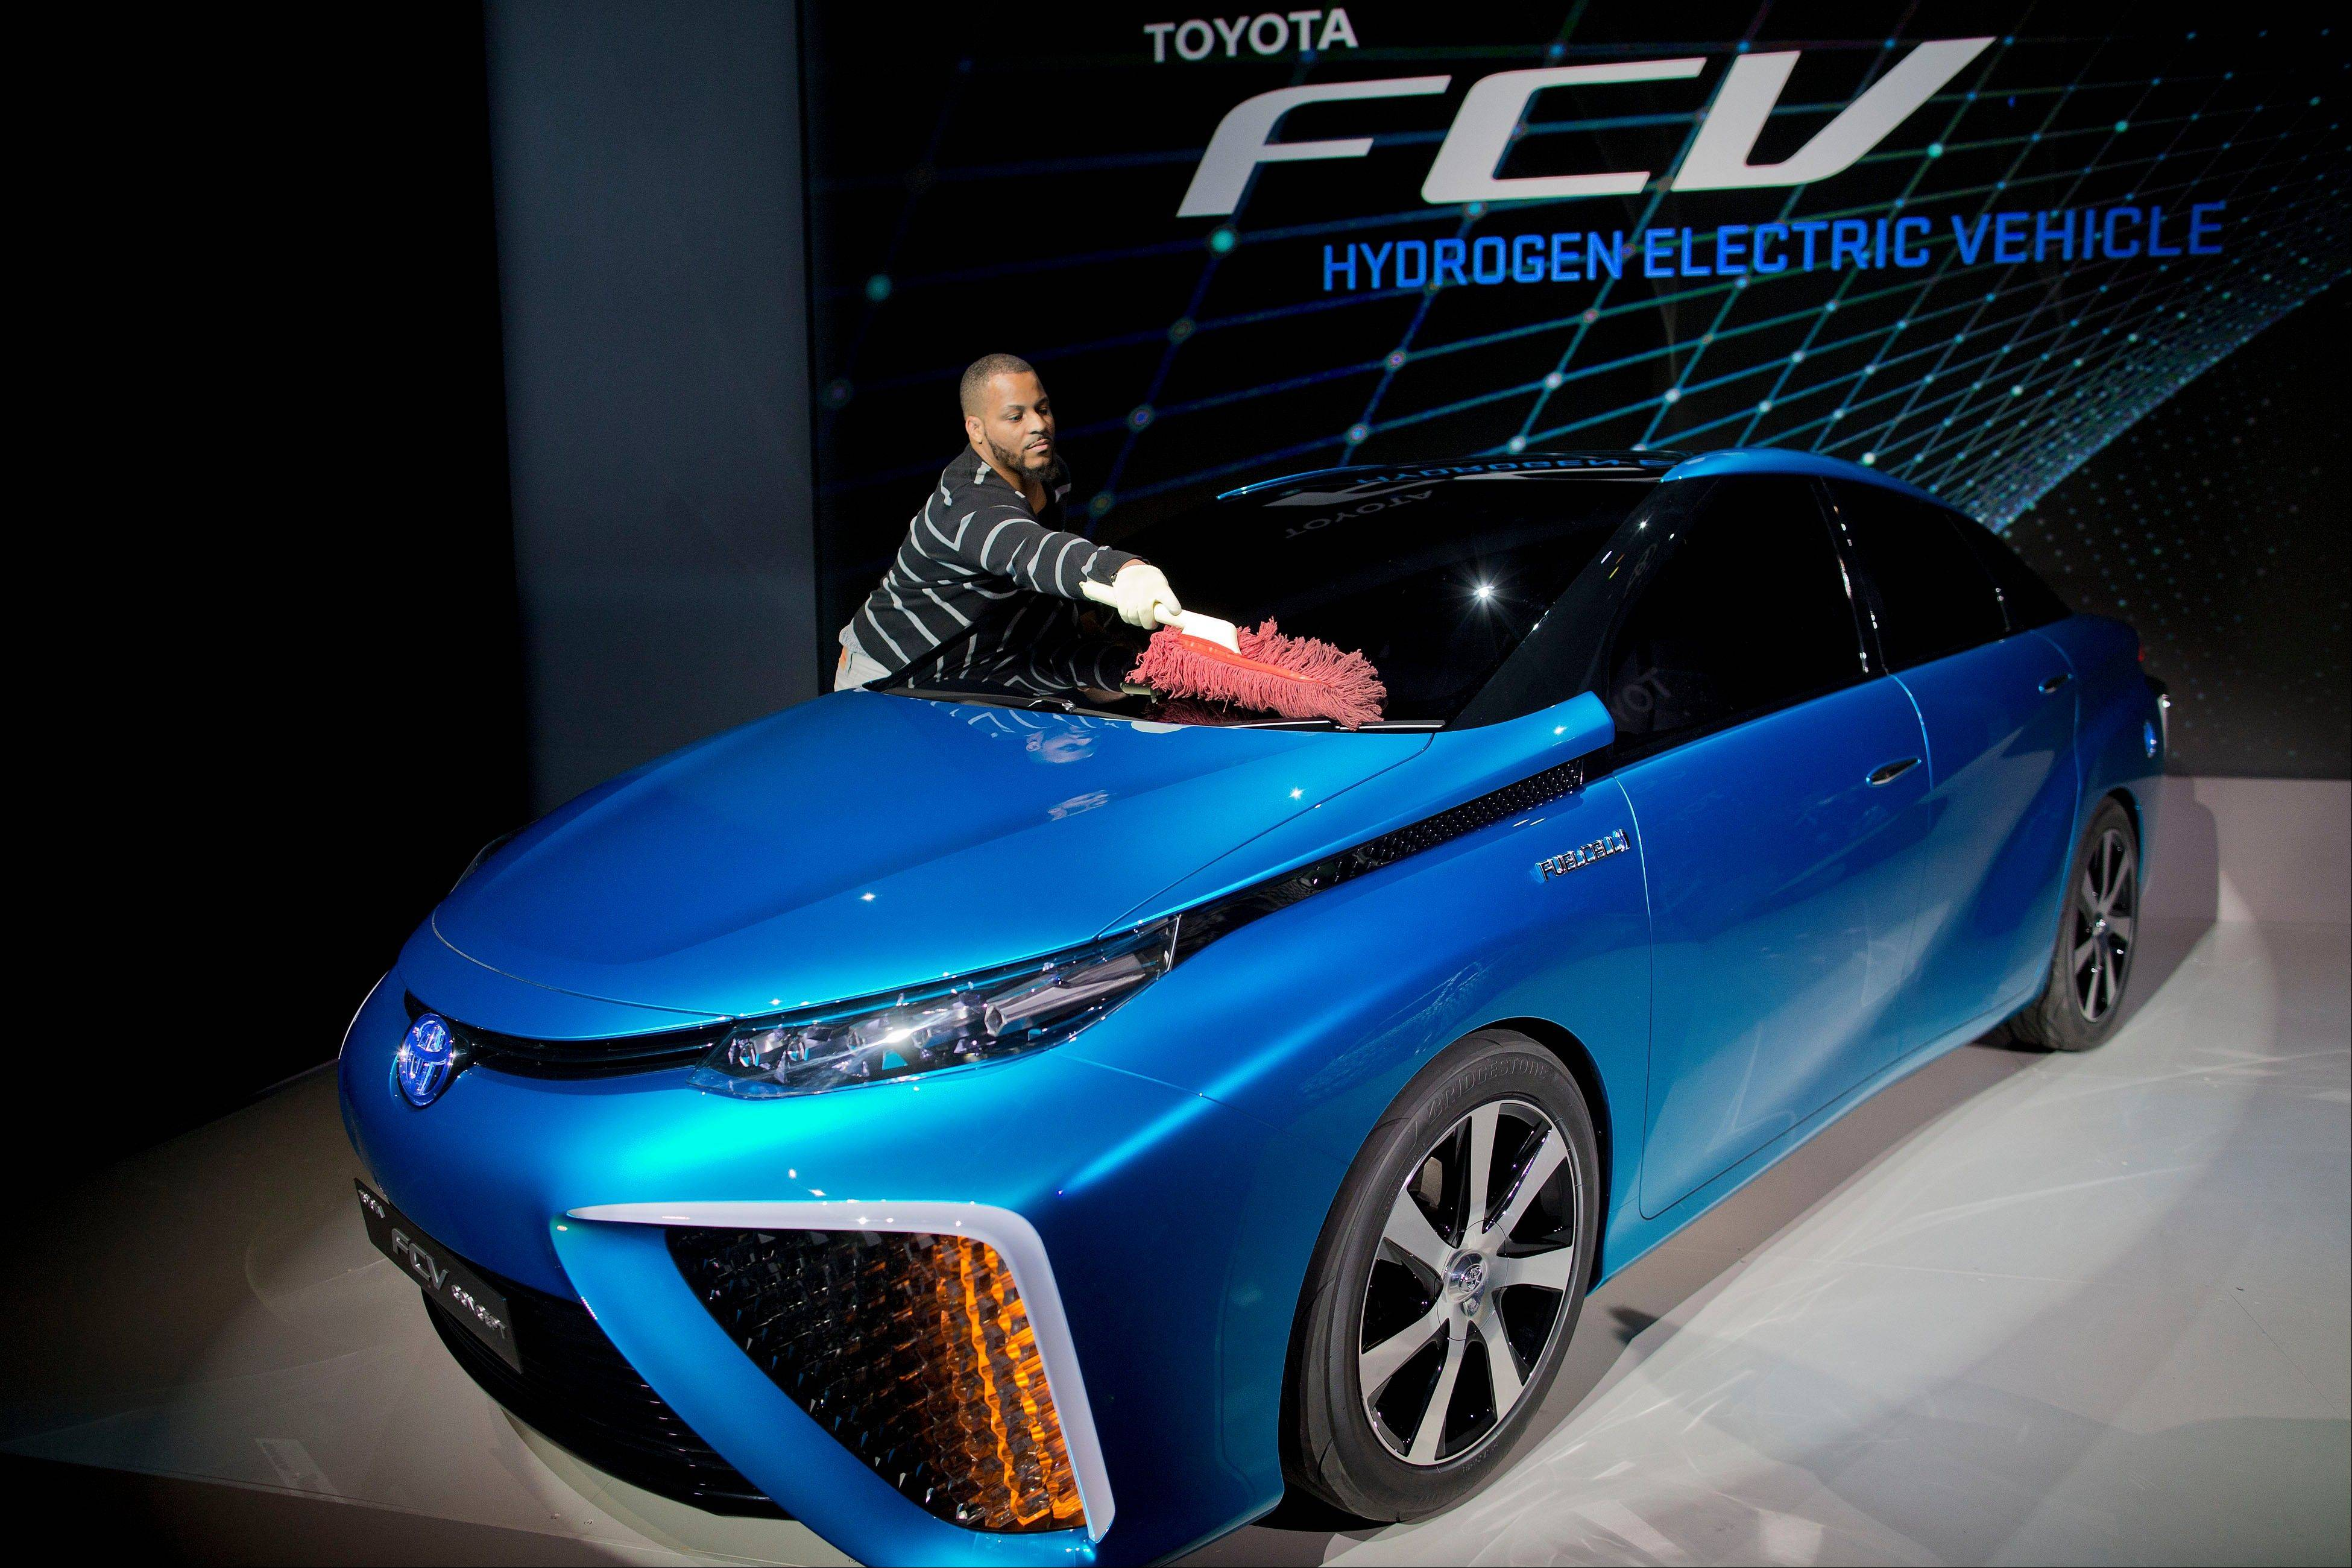 A production crew member dusts off Toyota�s FCV hydrogen electric concept car during the International Consumer Electronics Show in Las Vegas. Toyota announced the car would be available to consumers in 2015.